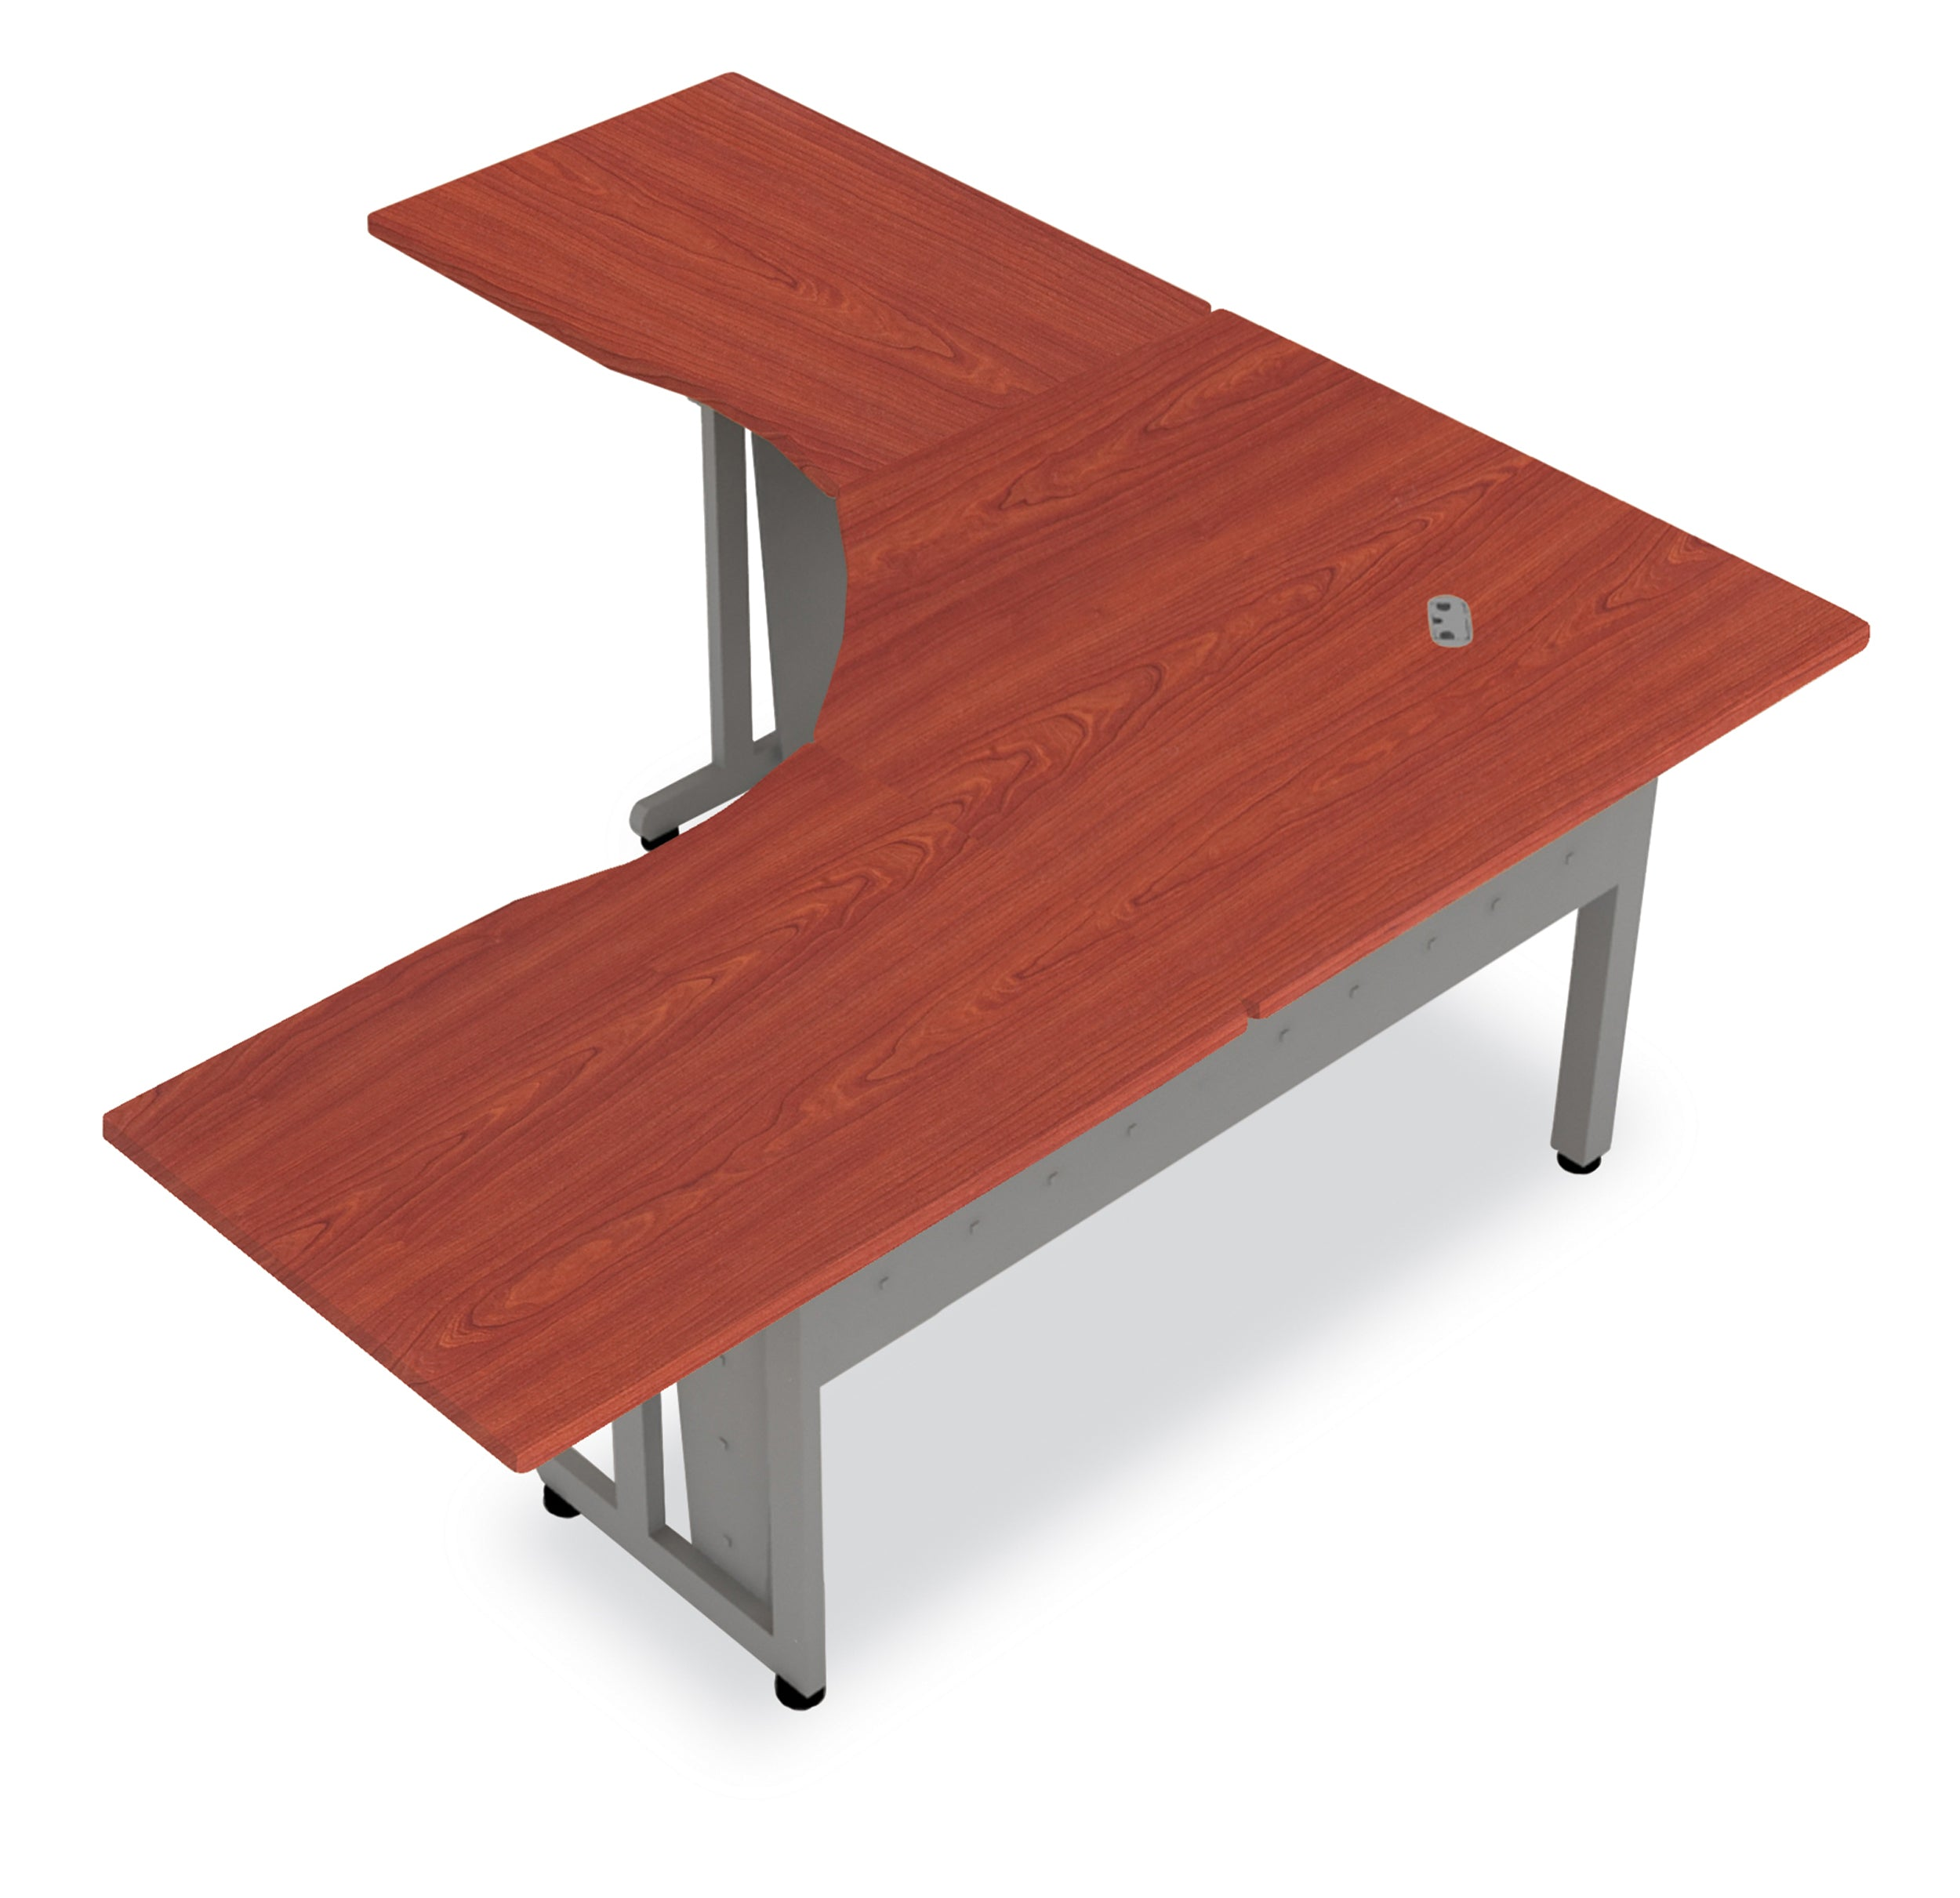 "Model 55224 72"" L-Shaped Freestanding Steel Workstation Table / Desk"